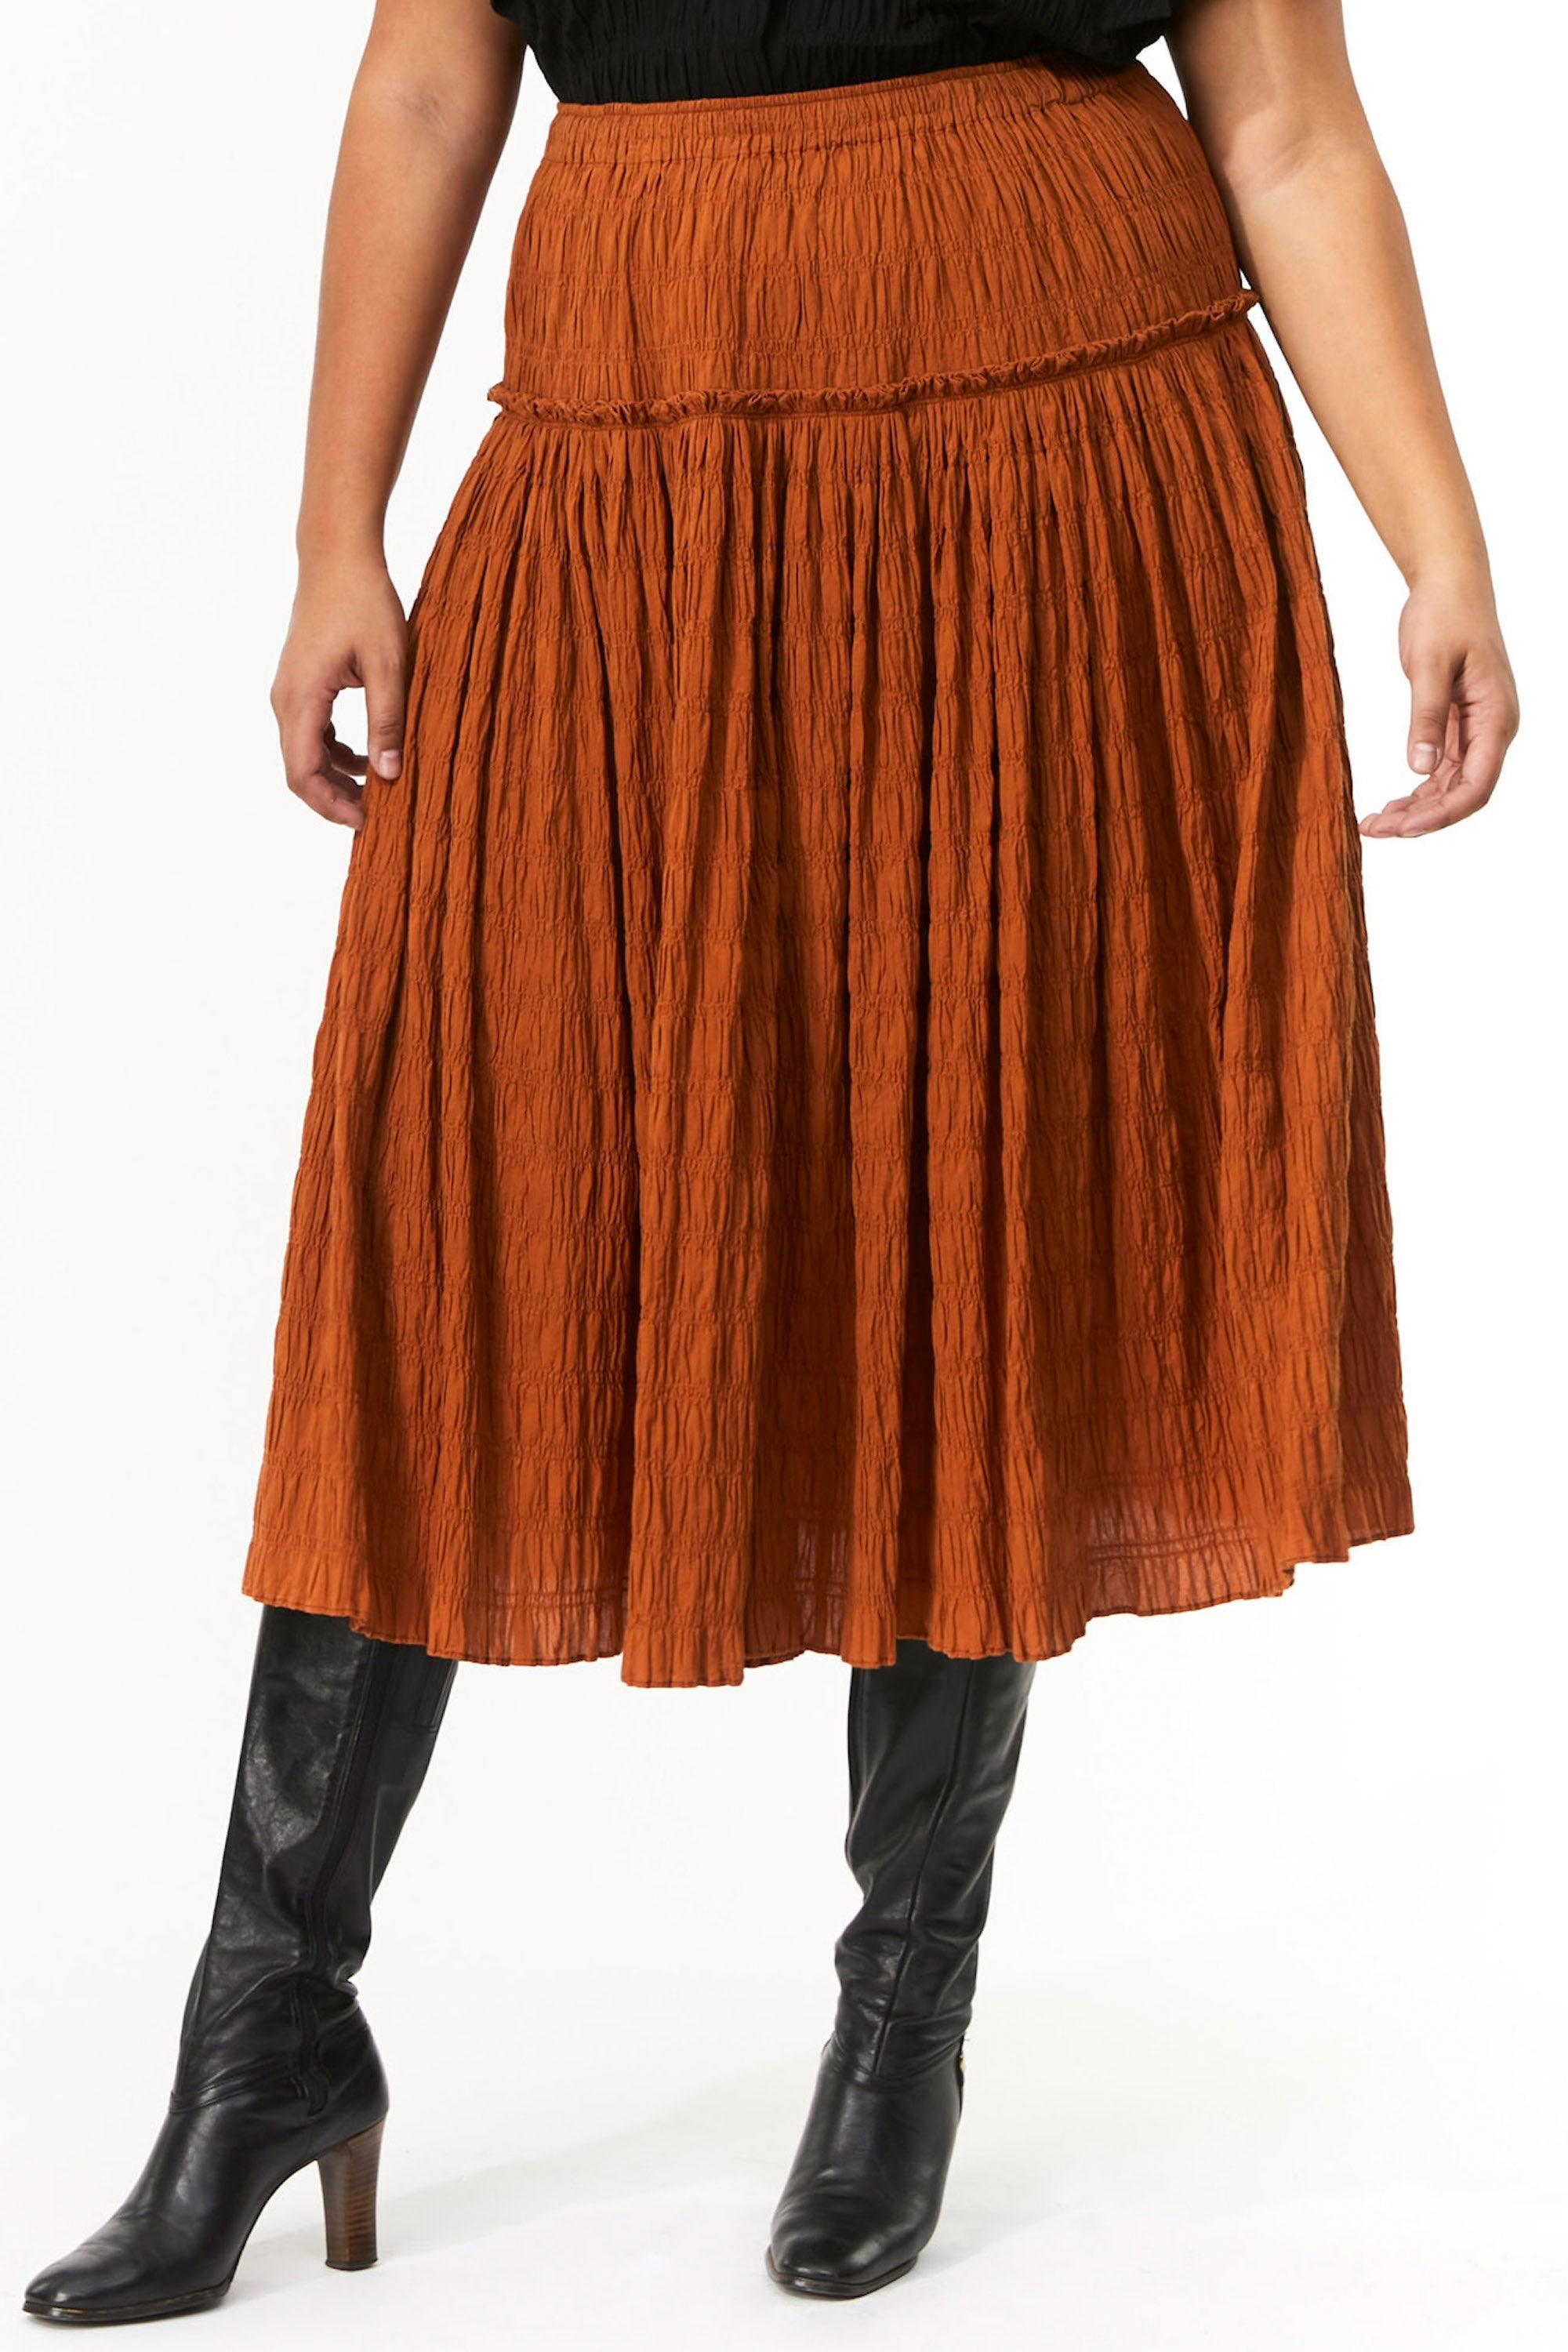 Extended Mara Hoffman Brown Alejandra Skirt in organic cotton (front detail)